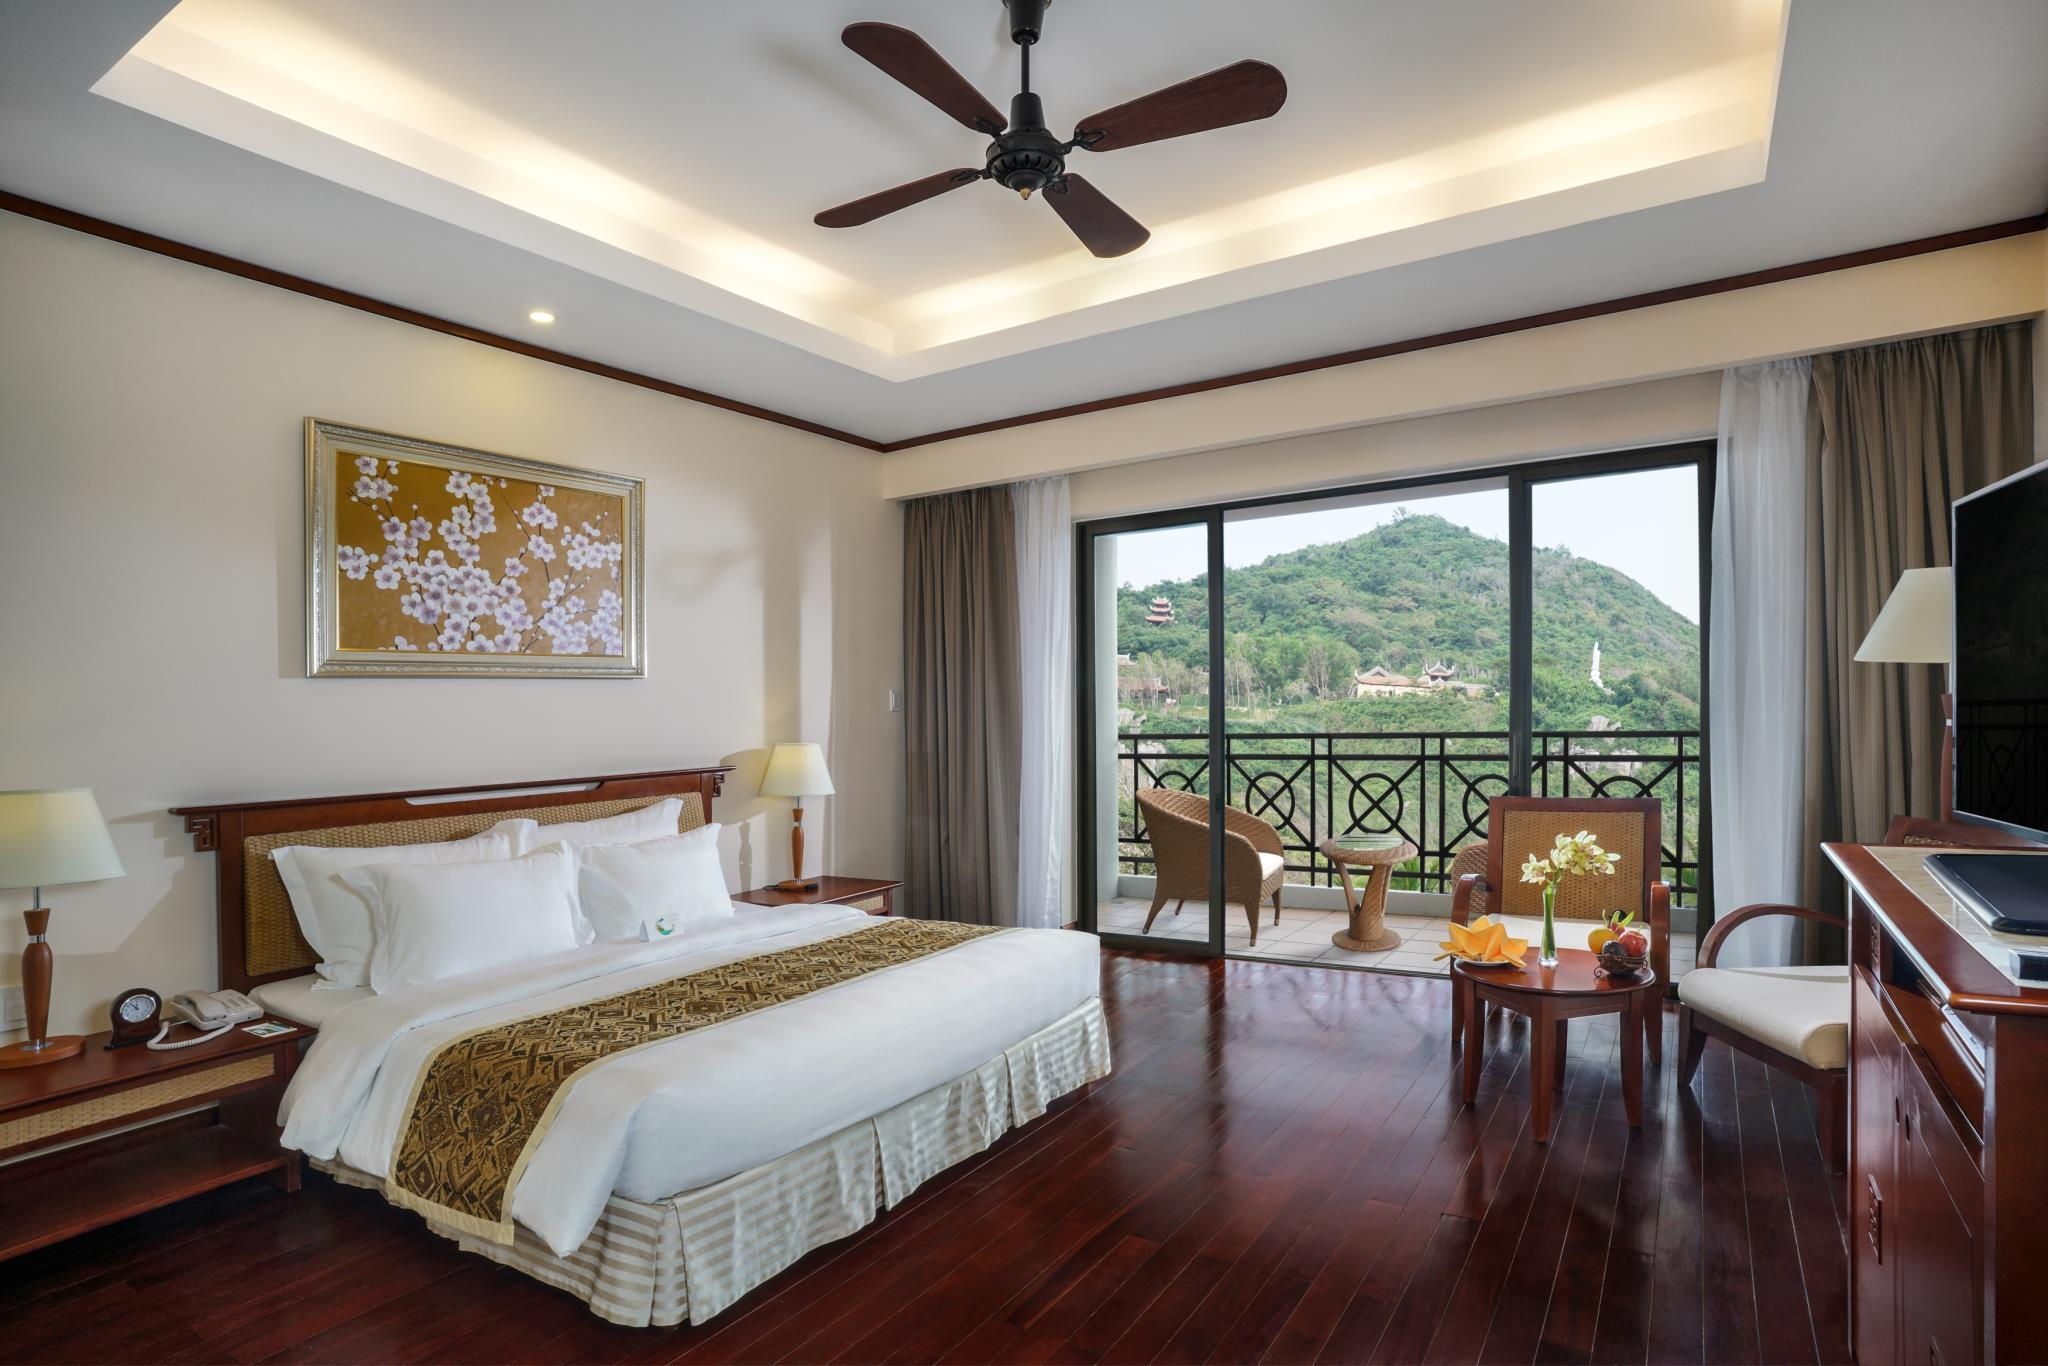 Grand Deluxe giường đôi (Grand Deluxe Double Room)